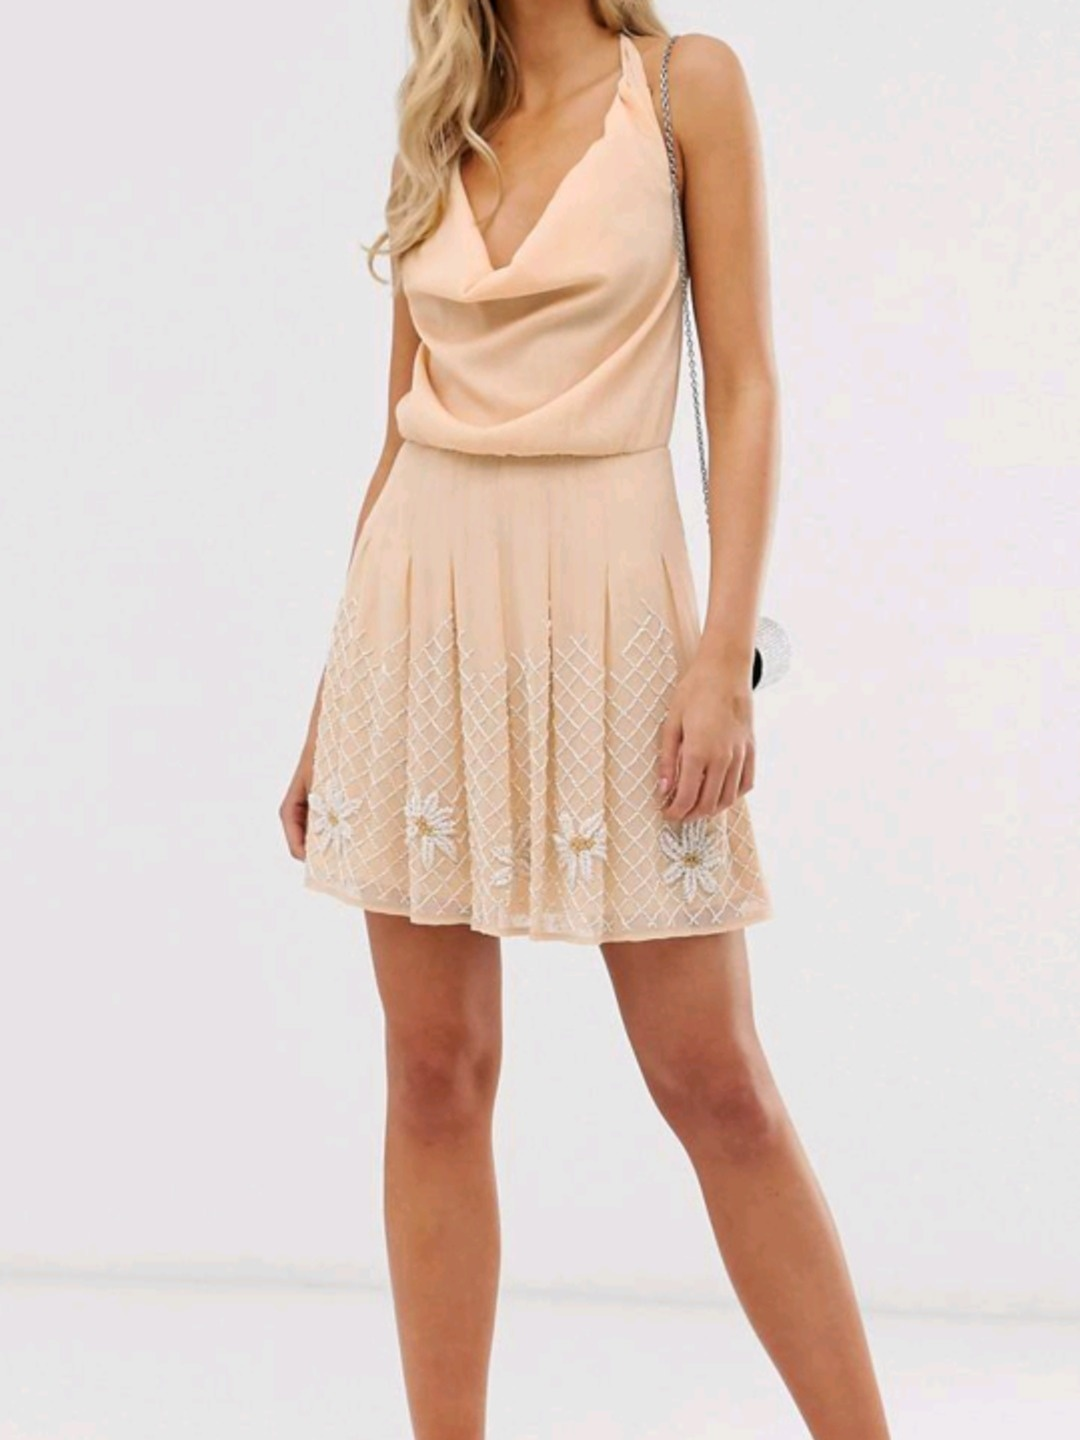 Women's dresses - ASOS photo 2